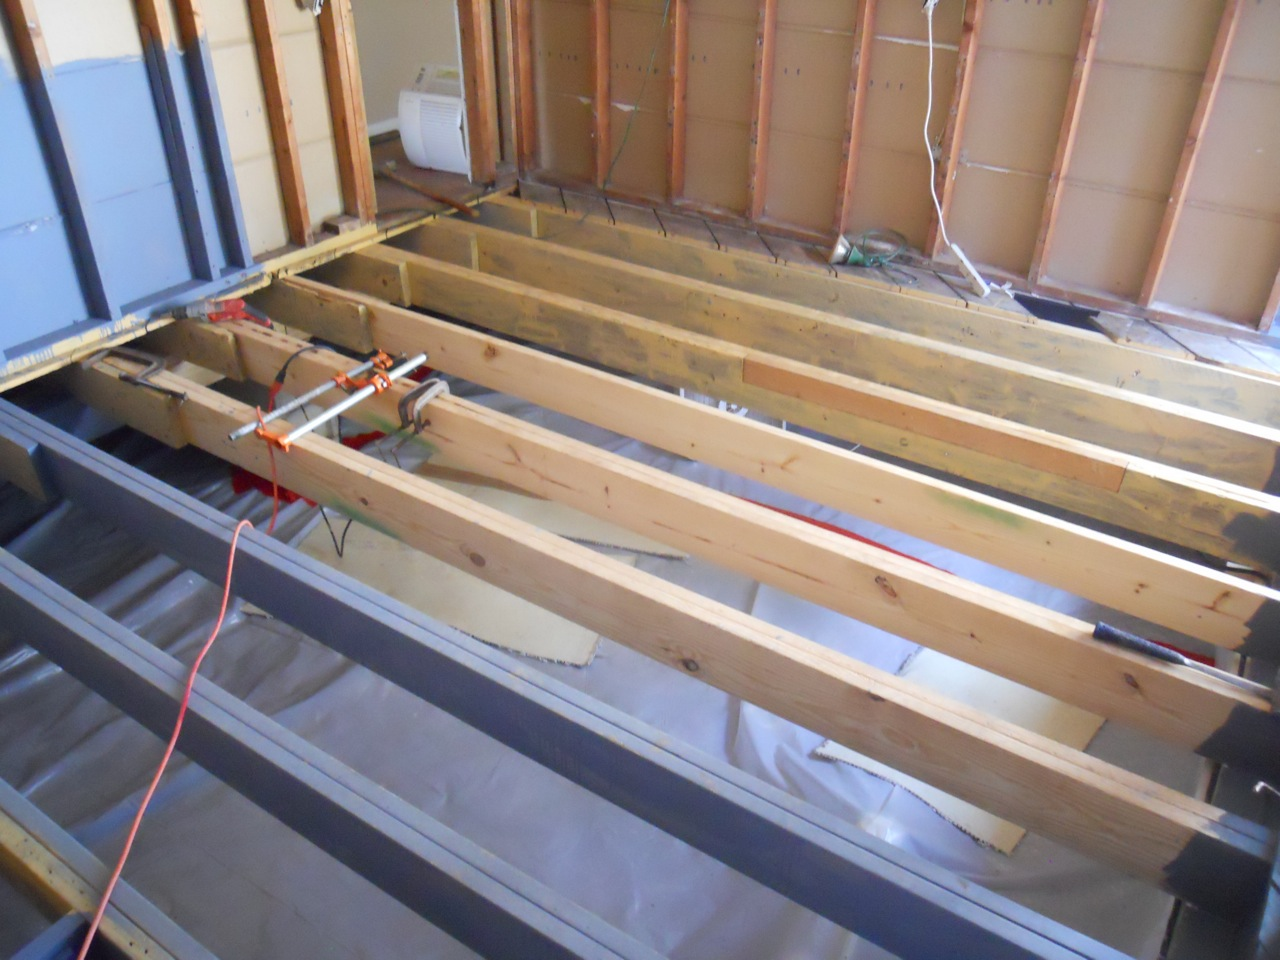 Bathroom Floor Joist Spacing : Square feet vapor barrier check subfloor